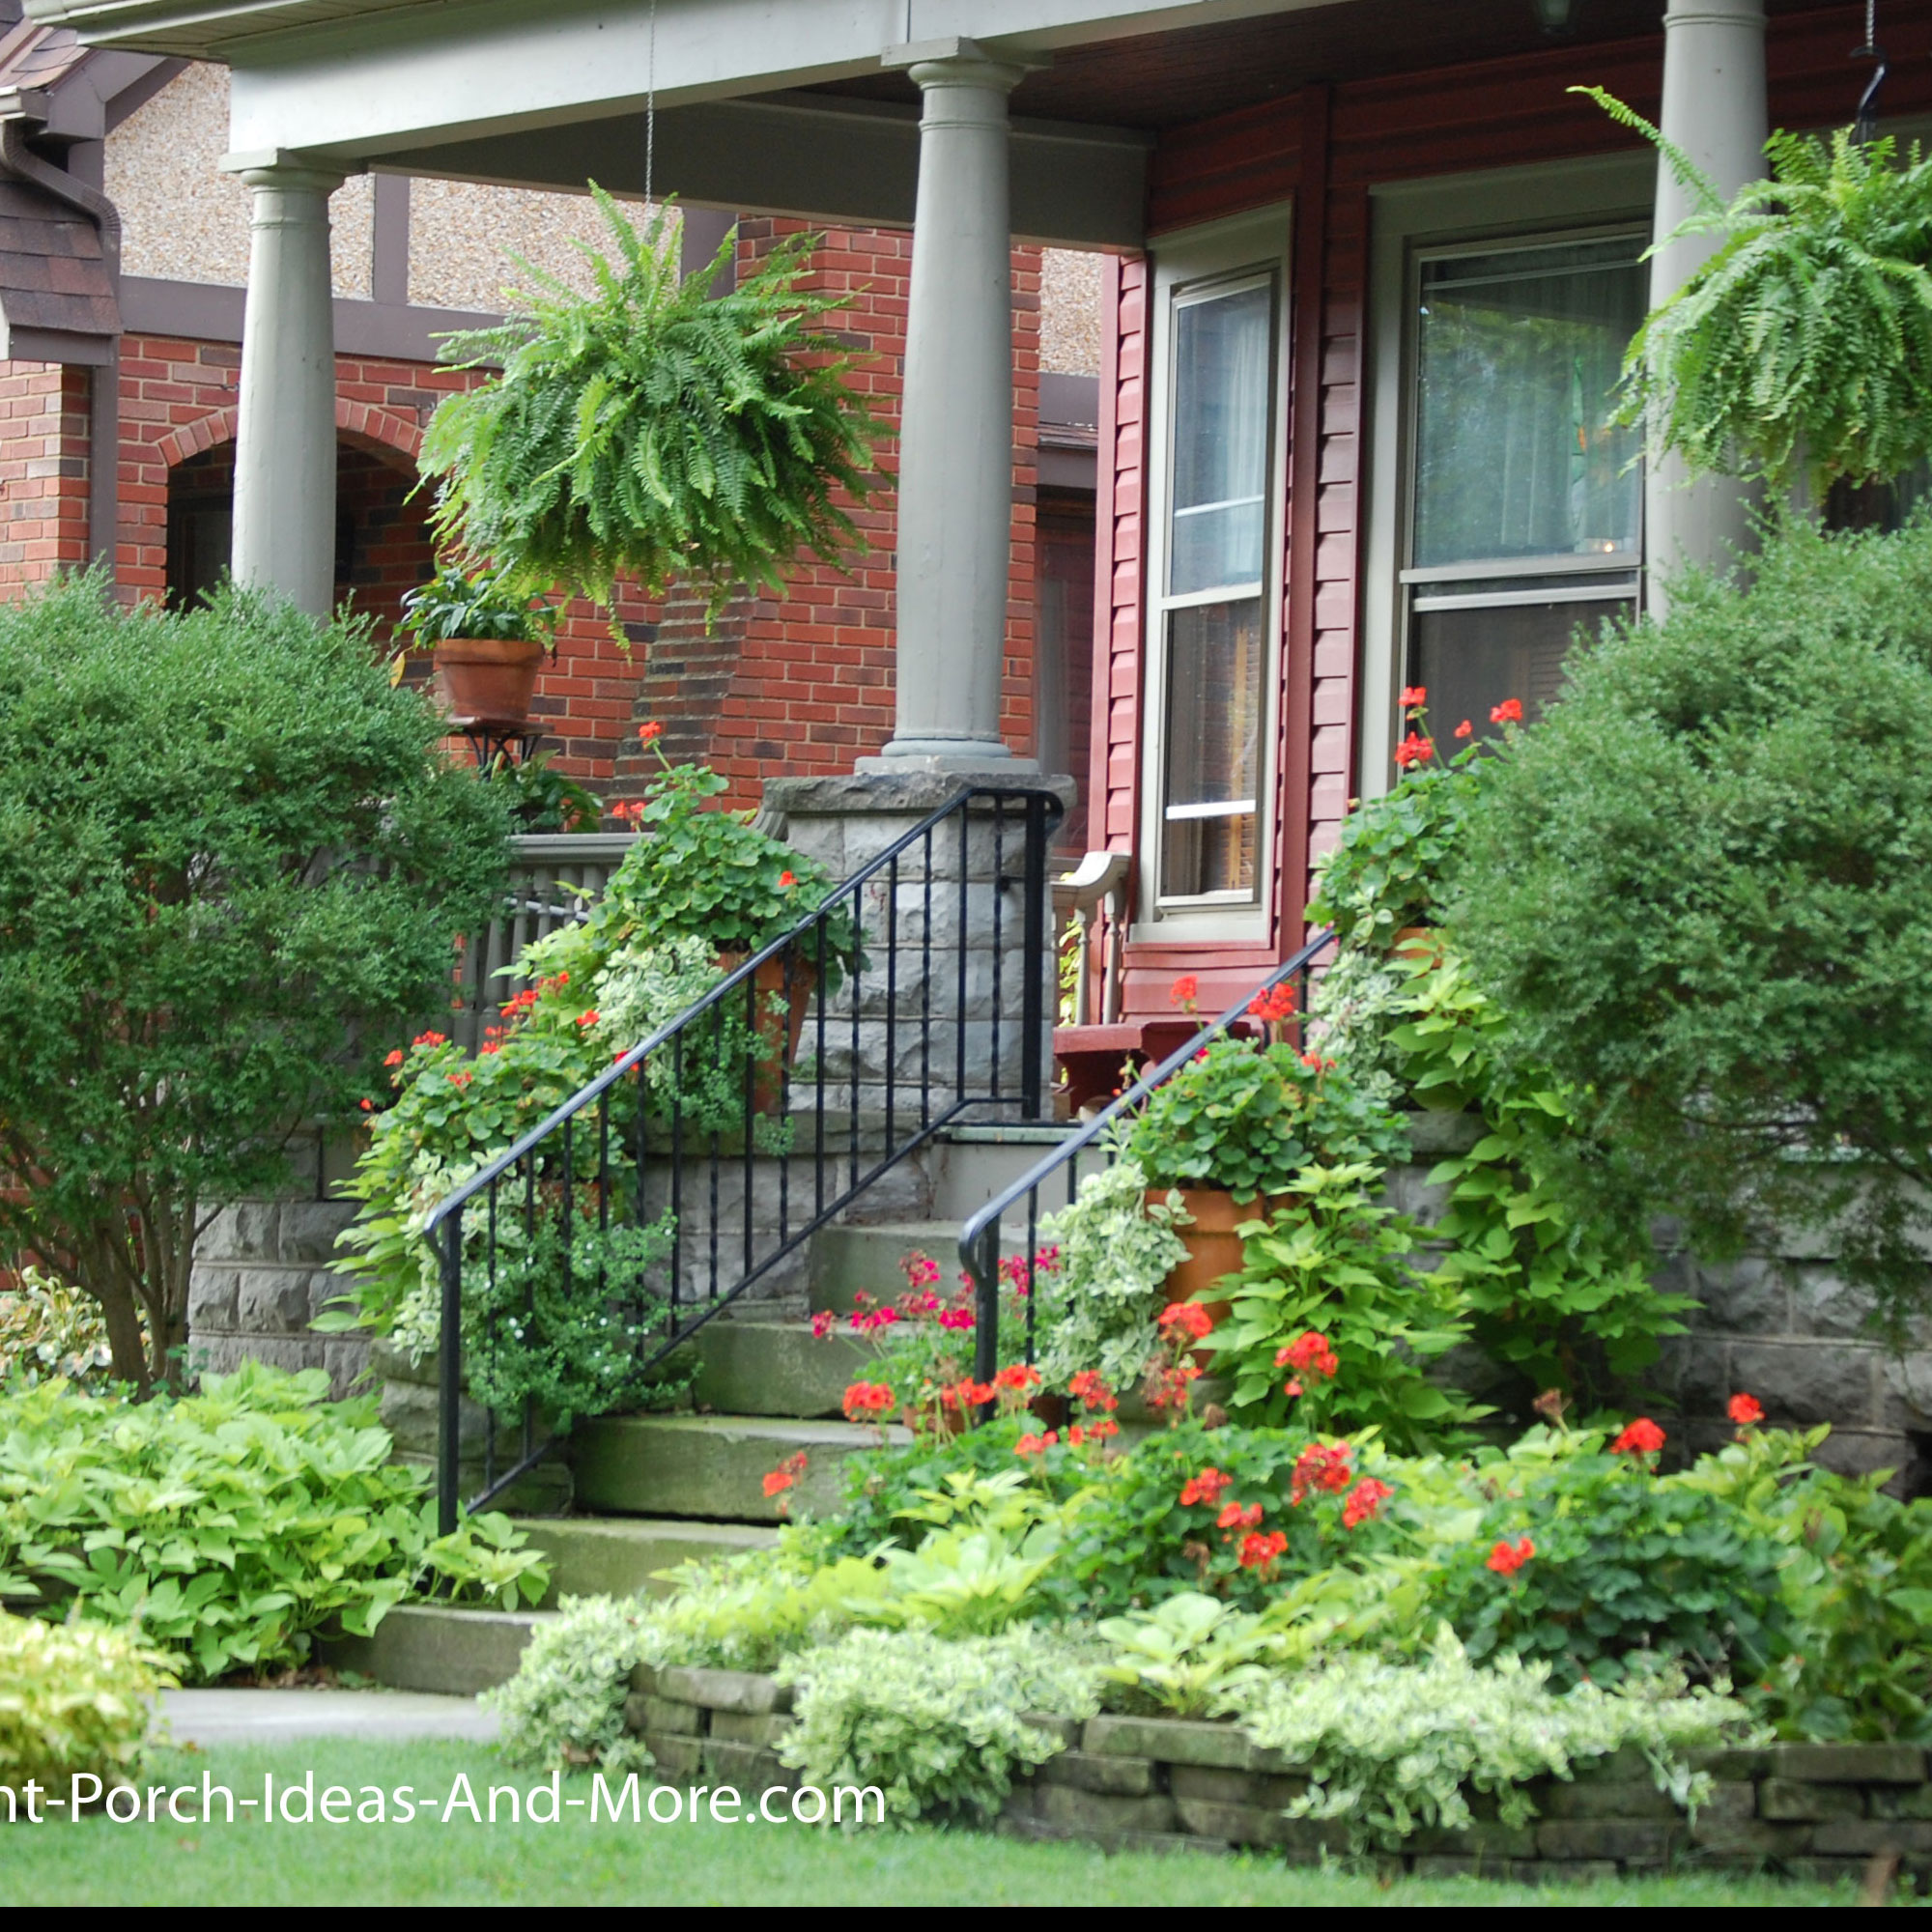 Porch Landscaping Ideas for Your Front Yard and More on Outdoor Front Yard Ideas id=68822